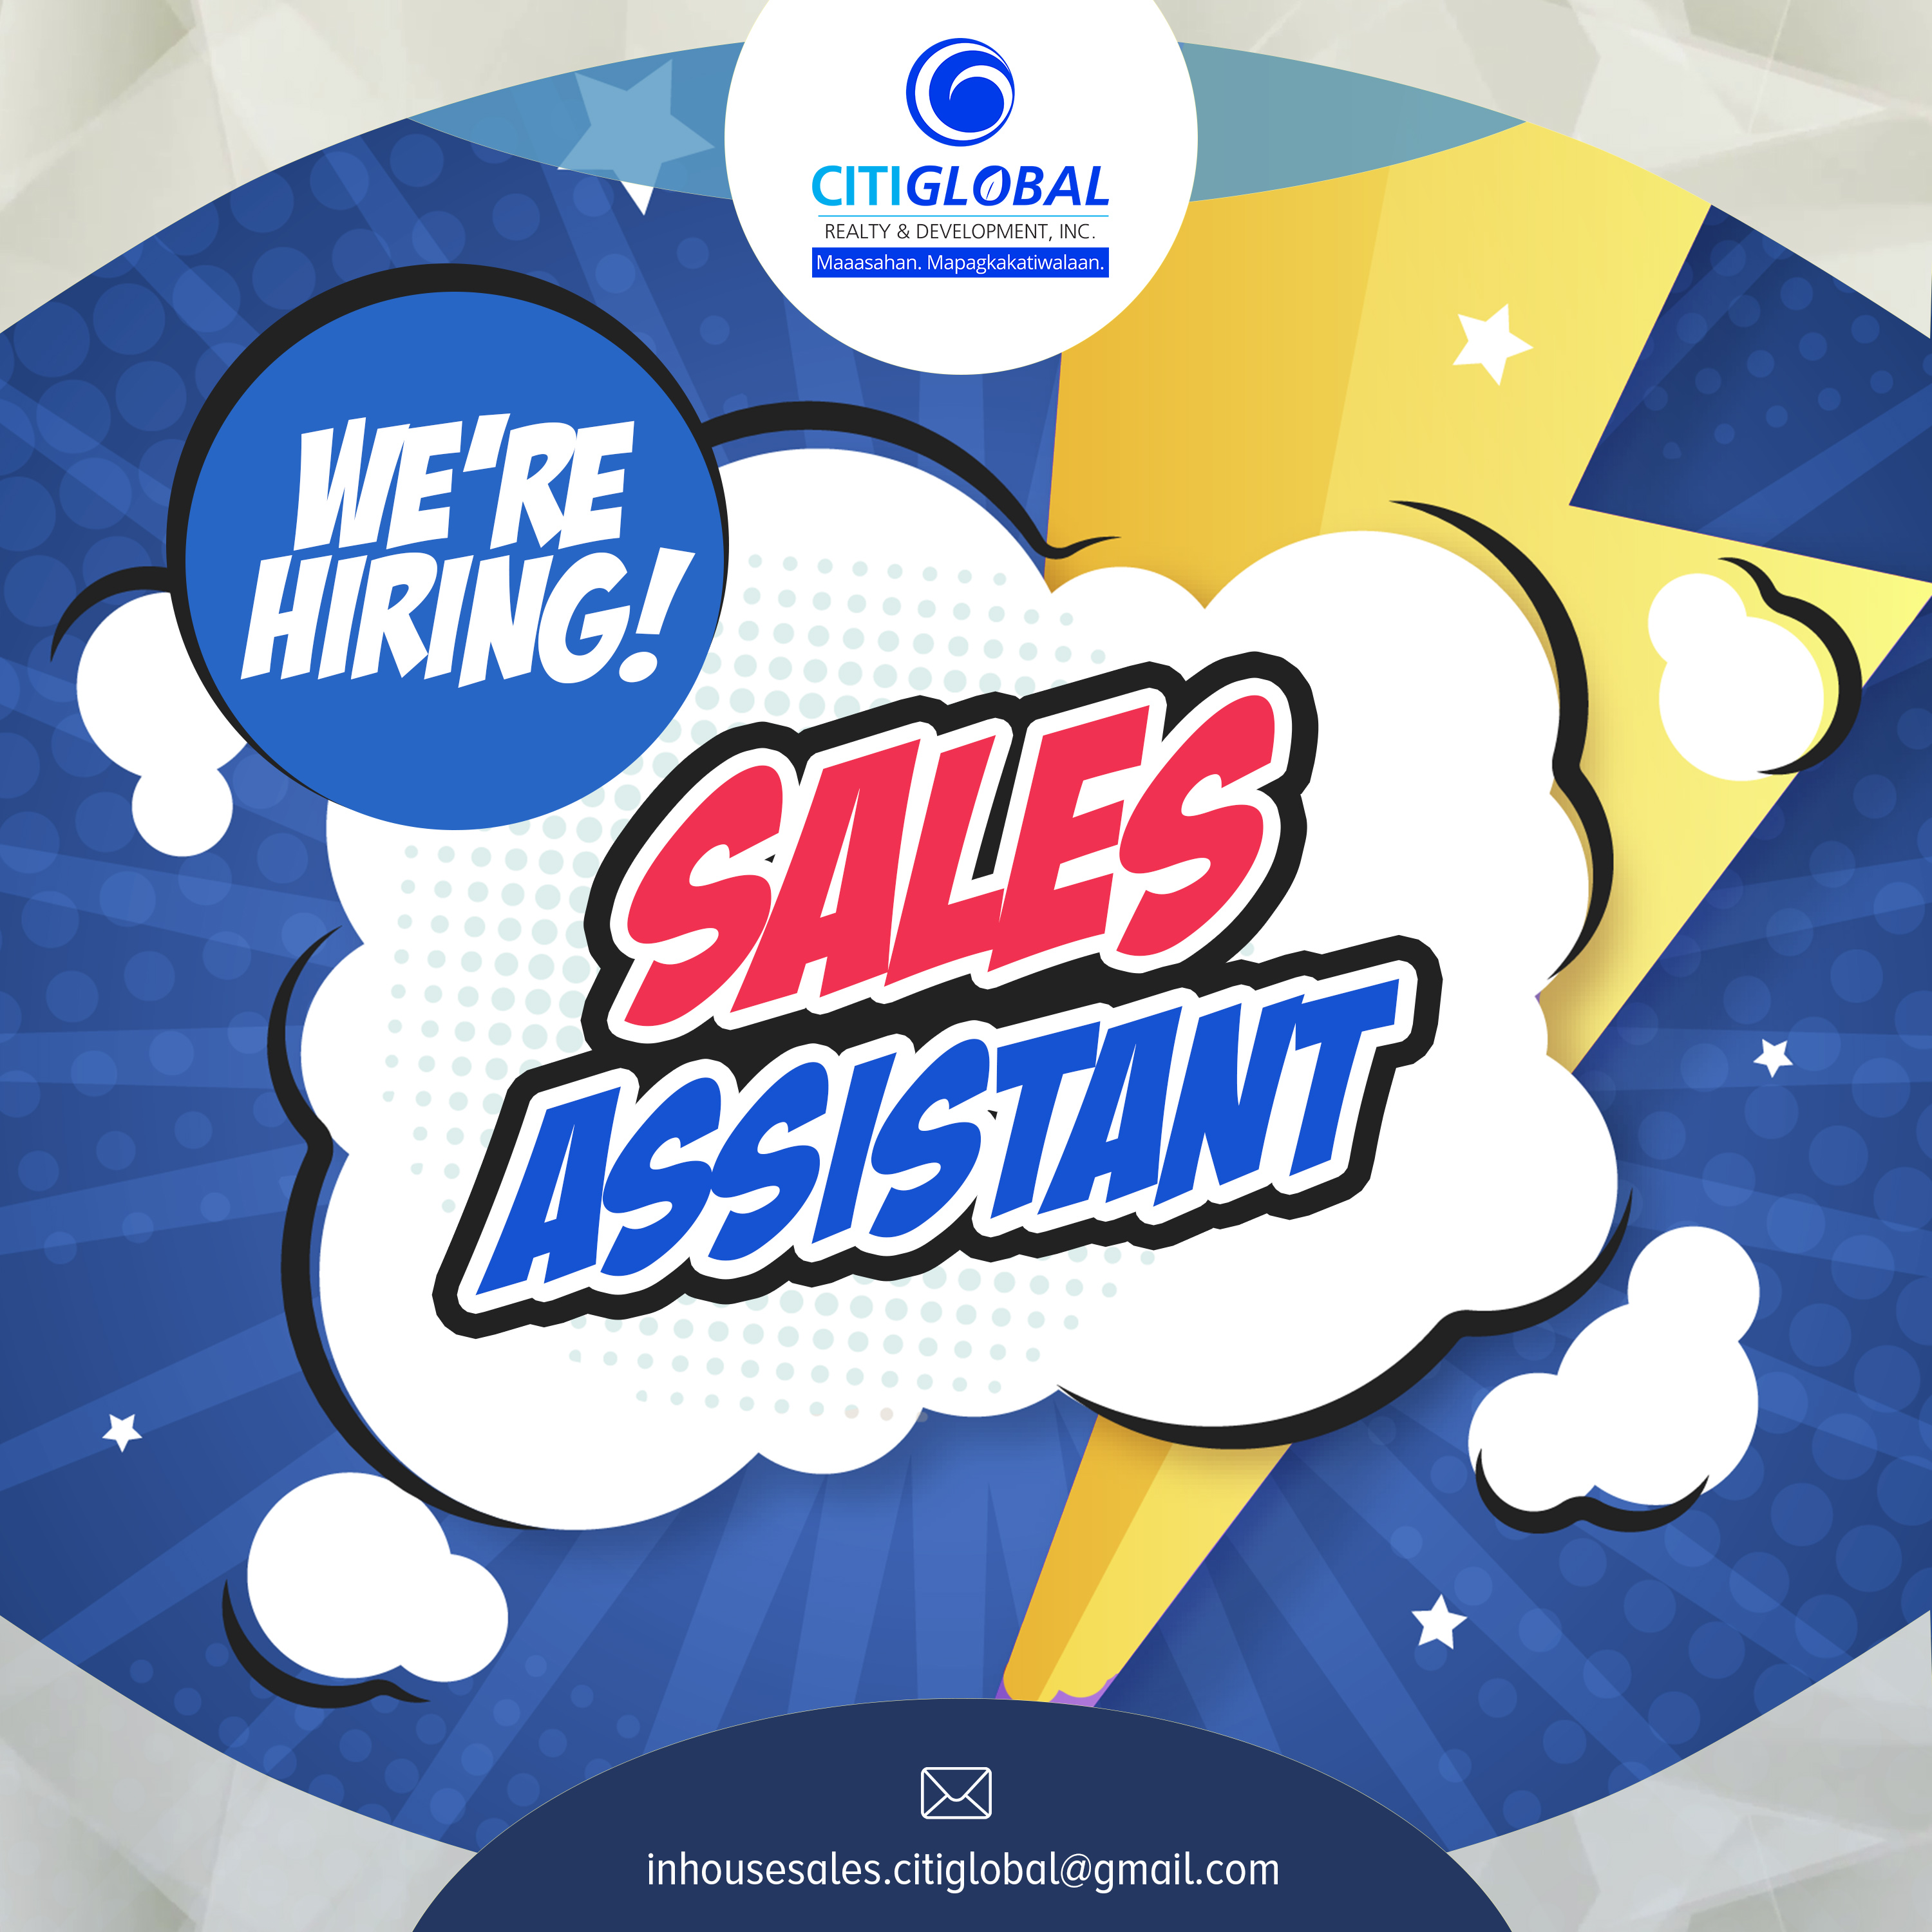 Sales Assistant from CitiGlobal Realty & Development Inc.